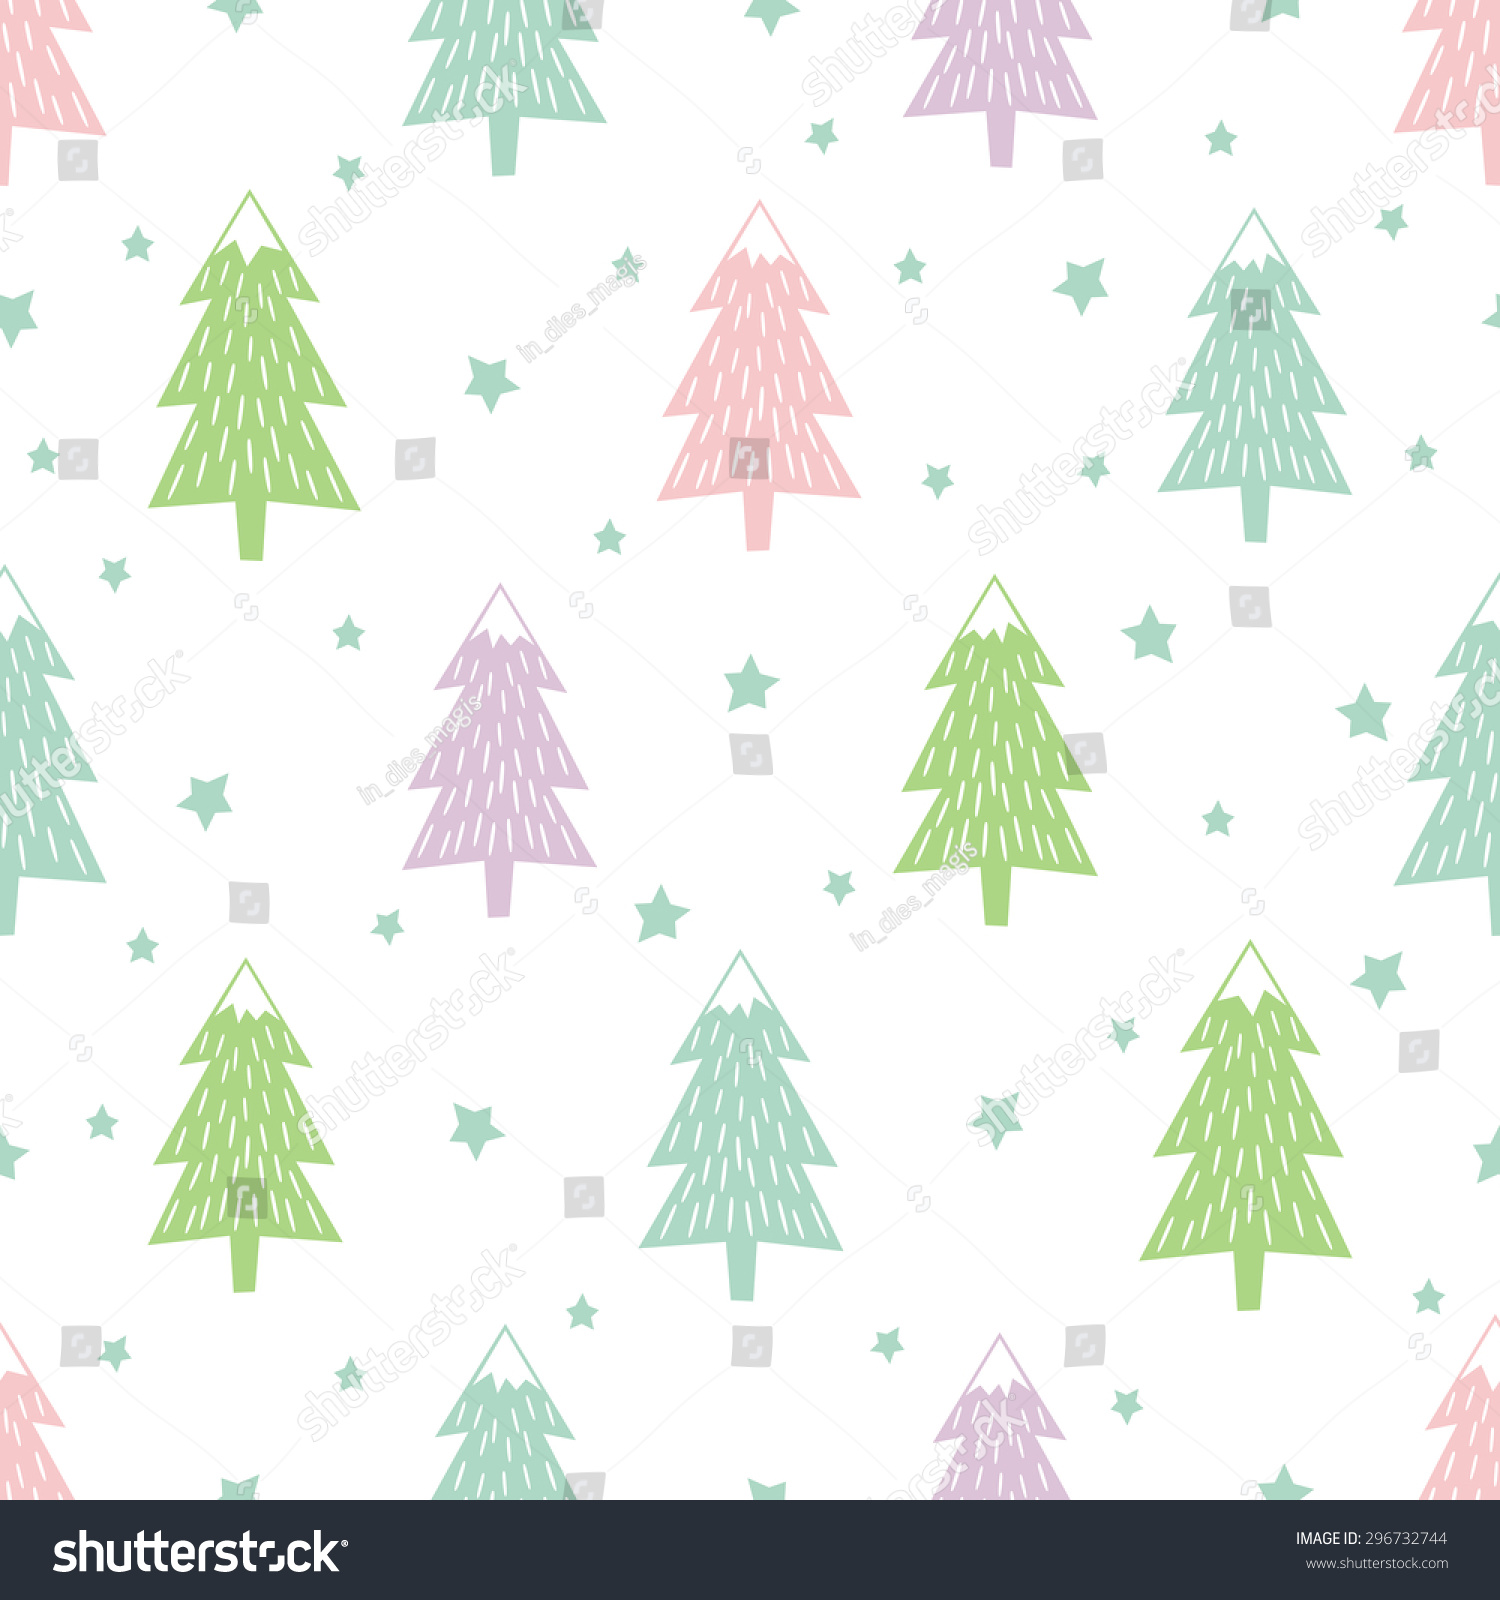 pastel happy new year background simple seamless retro christmas pattern varied xmas trees